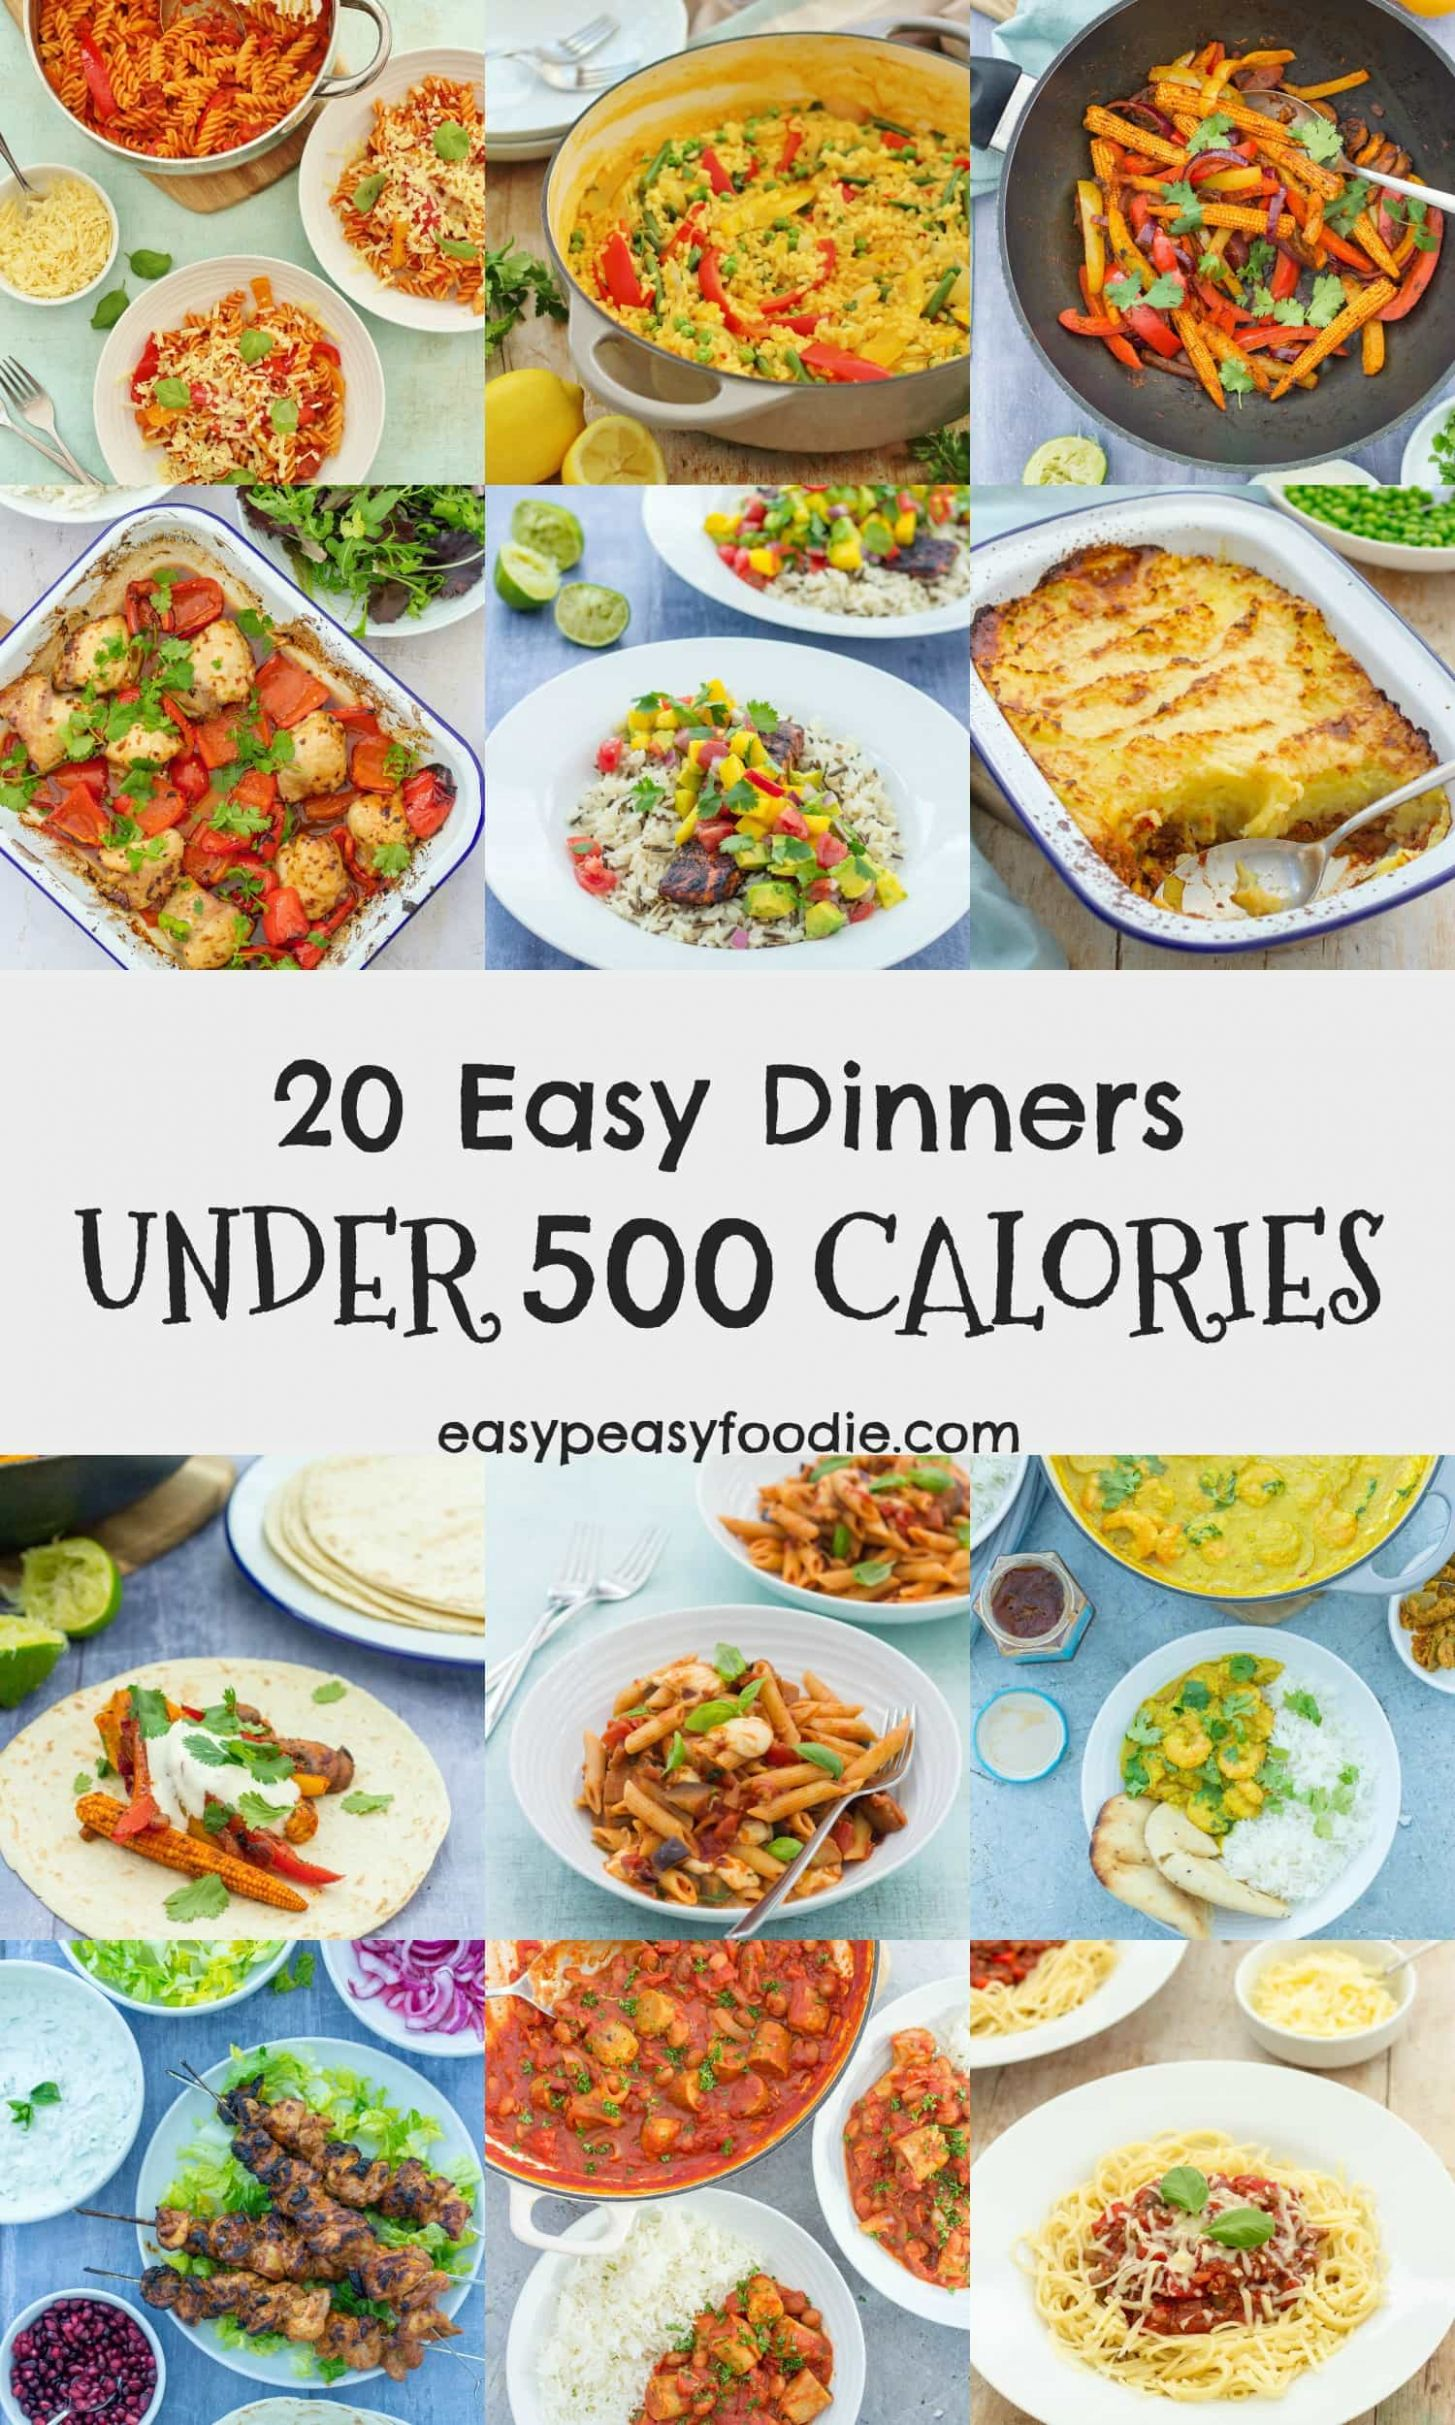 8 Easy Dinners Under 8 Calories - Easy Peasy Foodie - Salad Recipes Under 500 Calories